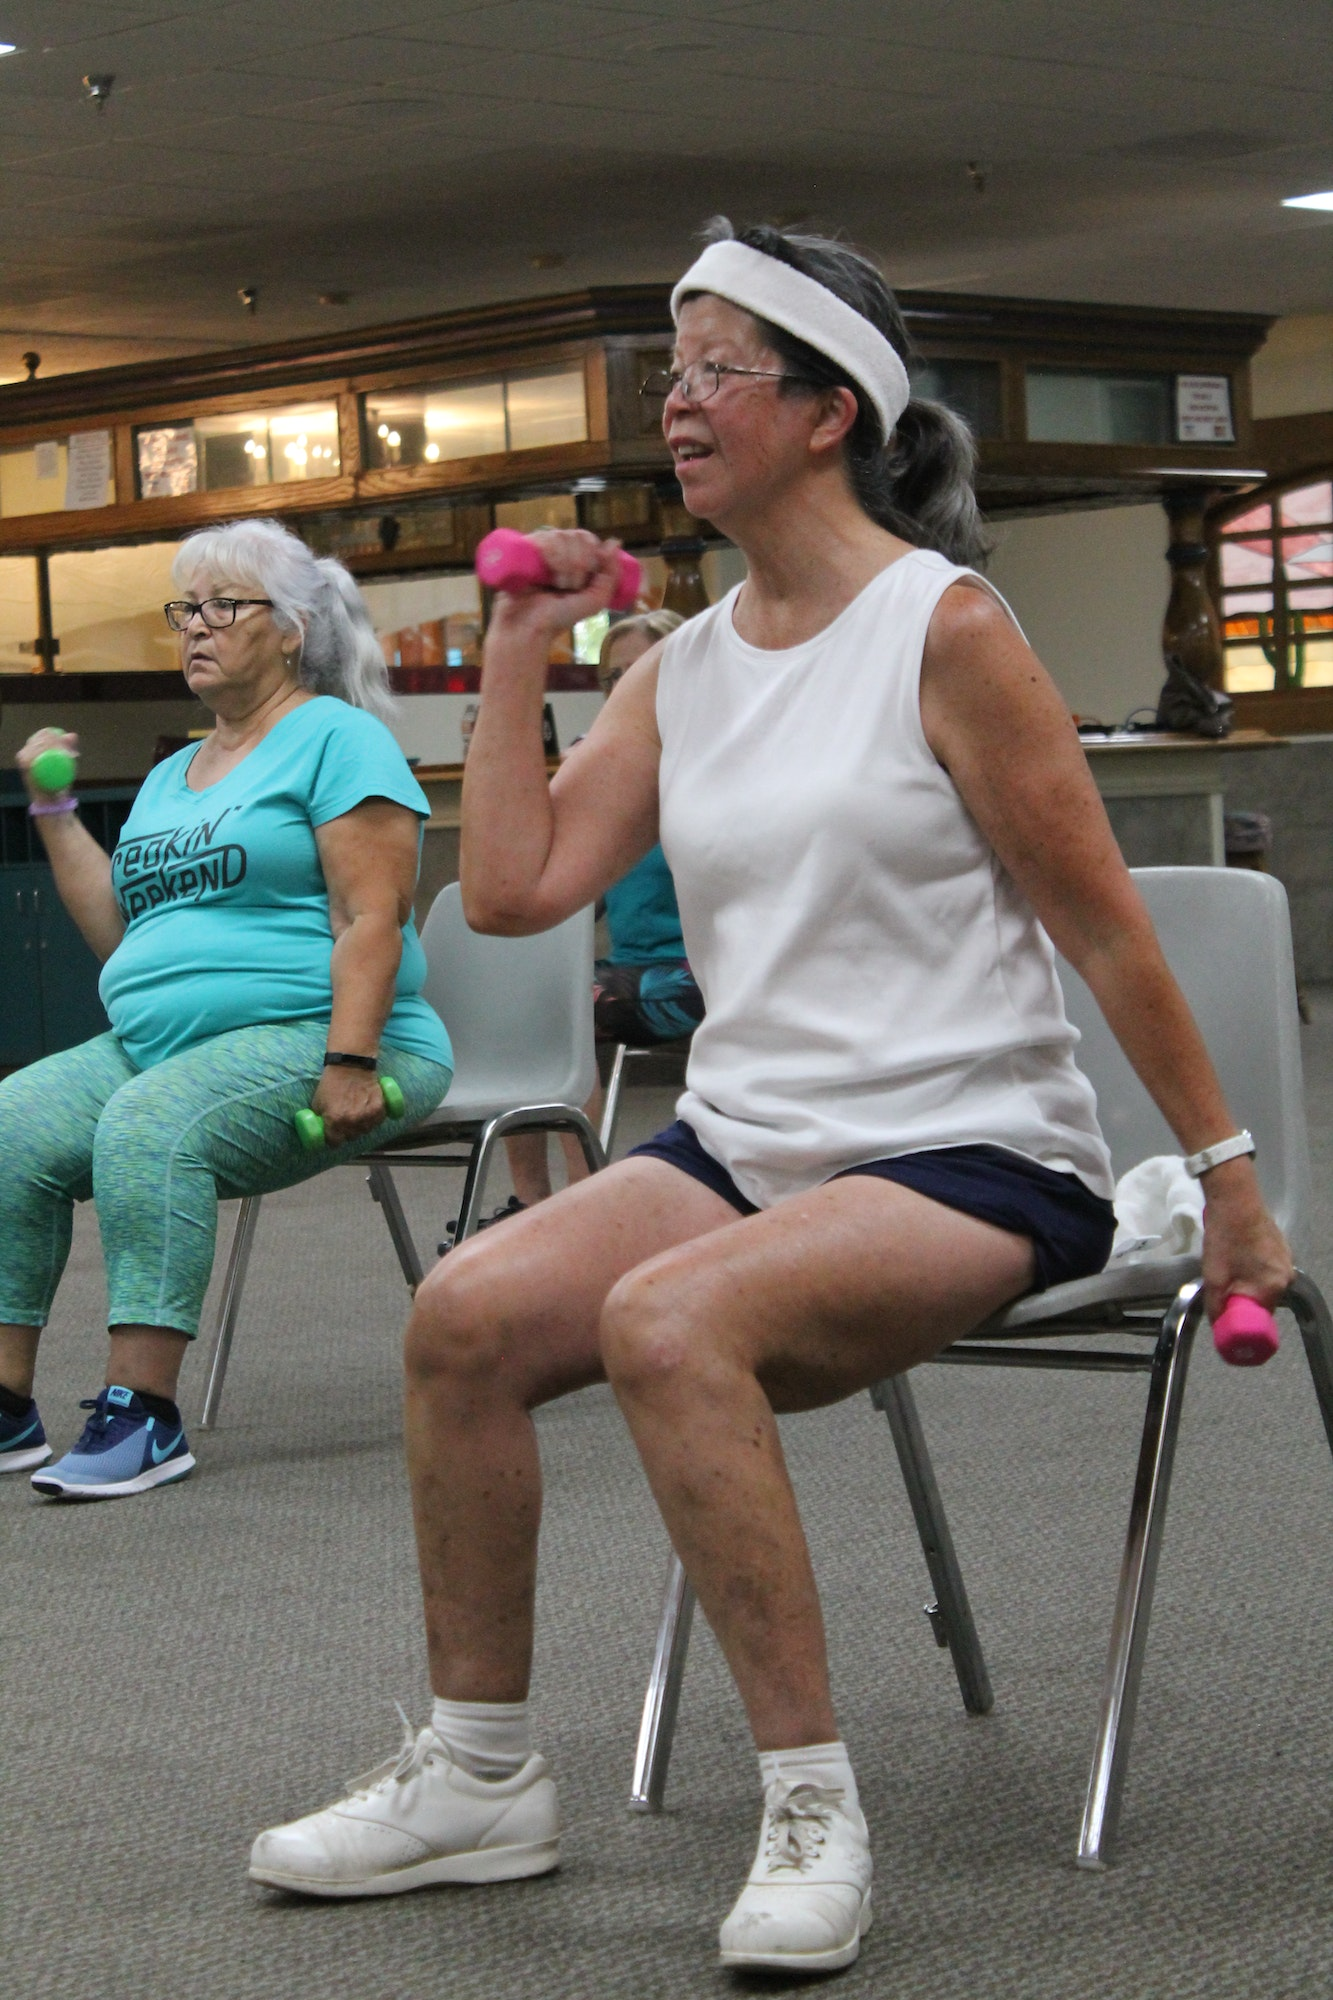 Two women enjoying the Fitness and Fun Exercise Class sitting on chairs with weights in each hand